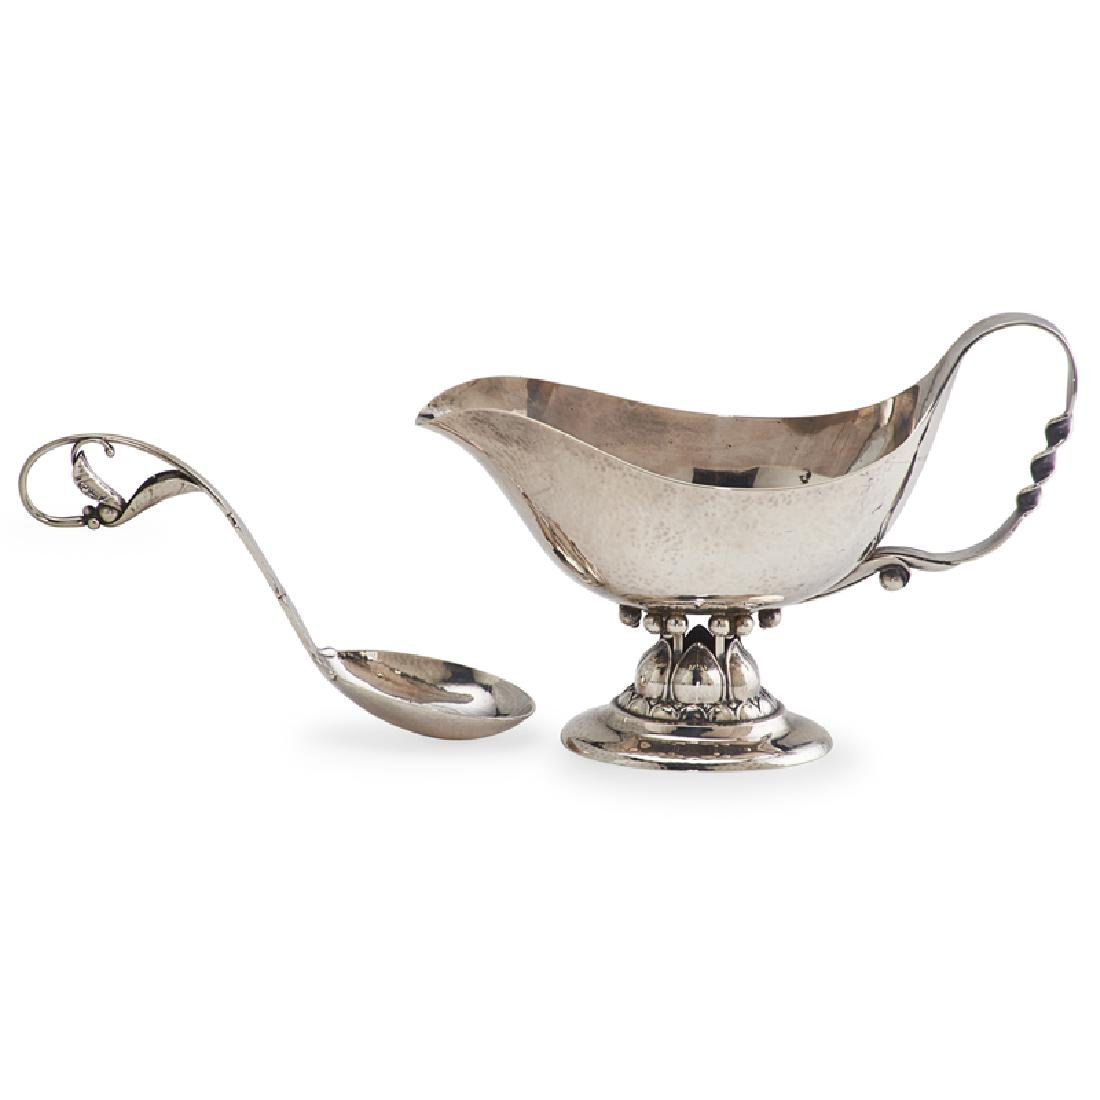 GEORG JENSEN Acorn gravy boat and spoon